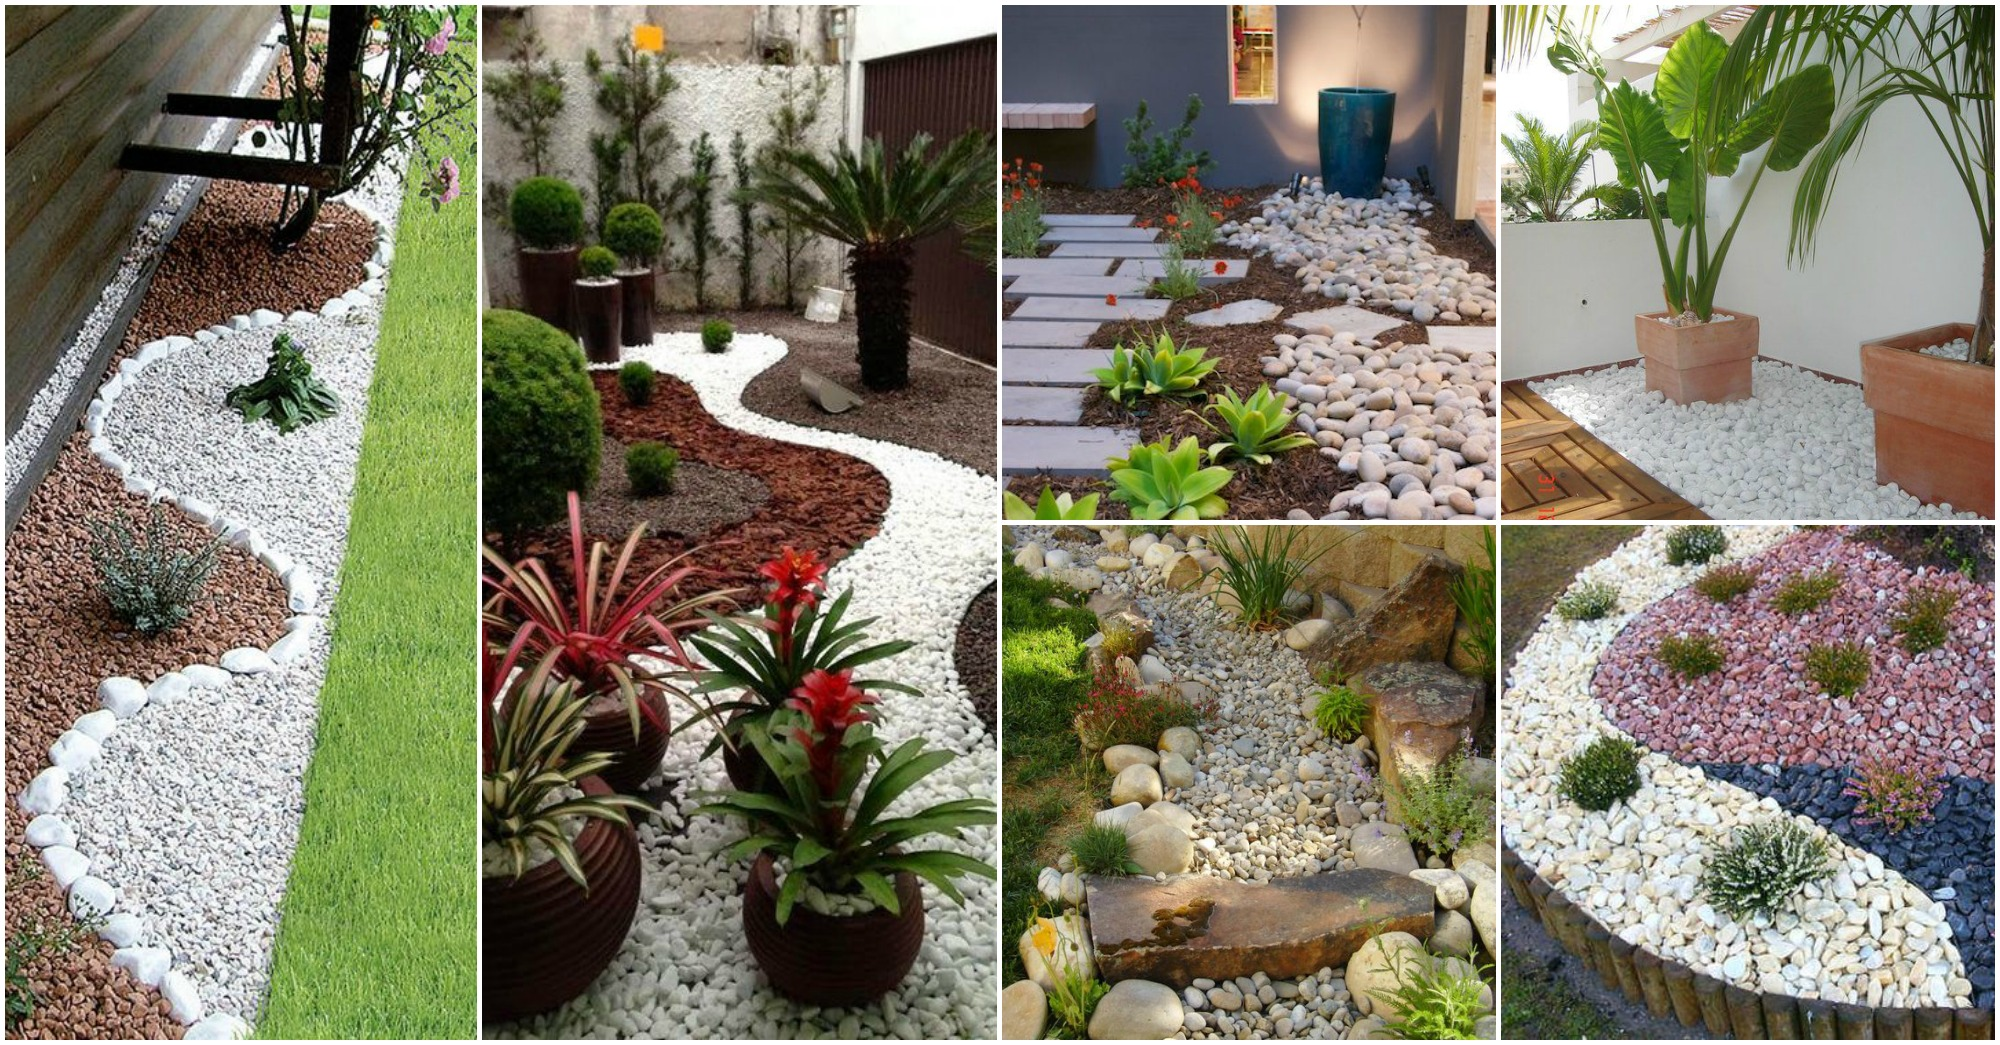 20 hermosas ideas para decorar tu jard n con piedras for Decoracion de arboles de jardin